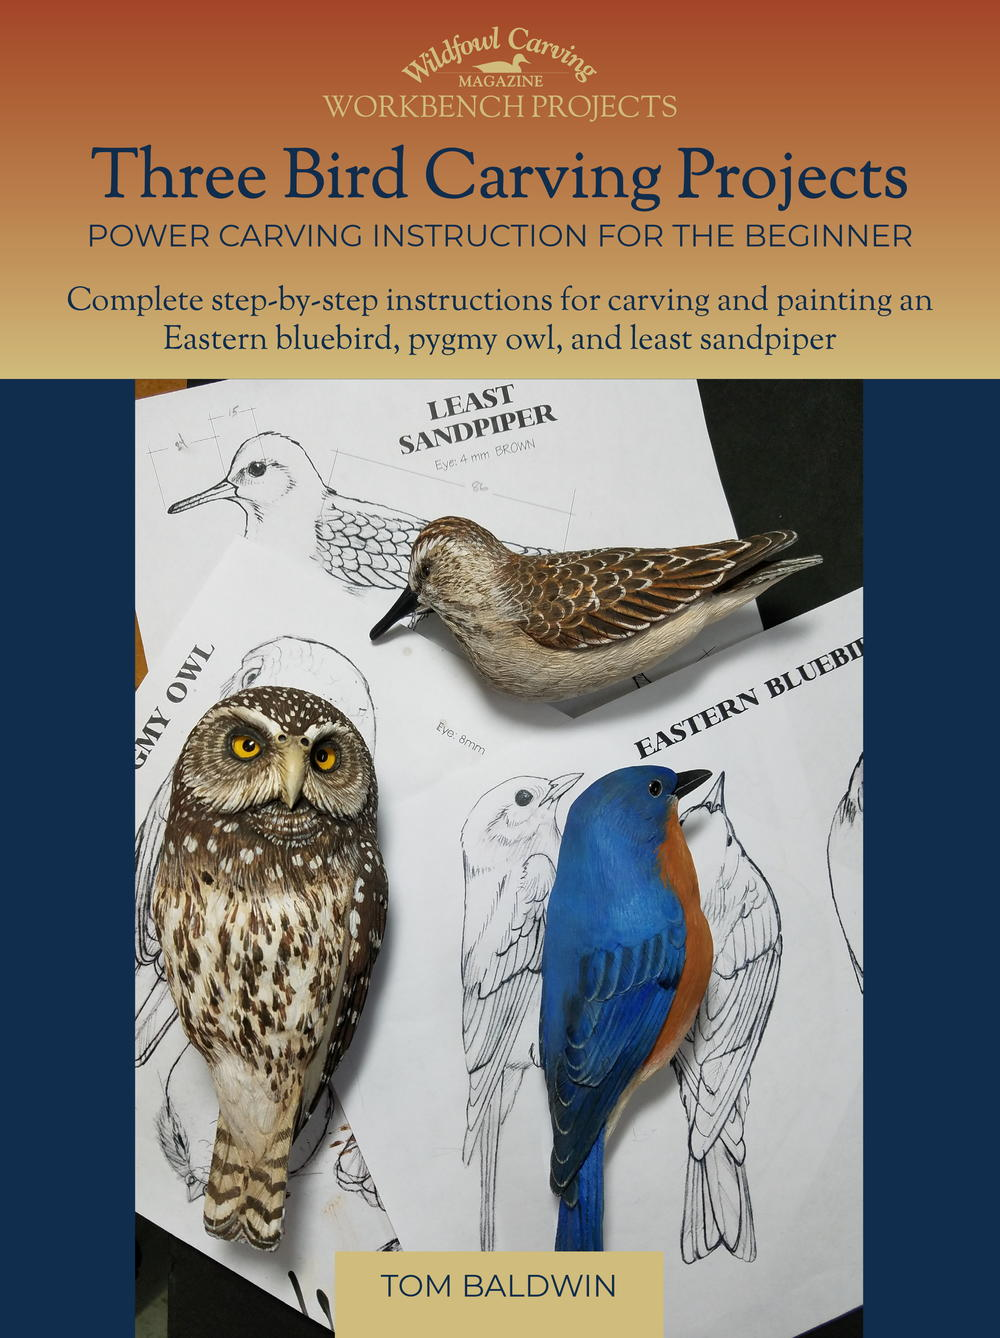 Three-Bird-Carving-Projects_ExtraLarge1000_ID-2890185.jpg?v=2890185